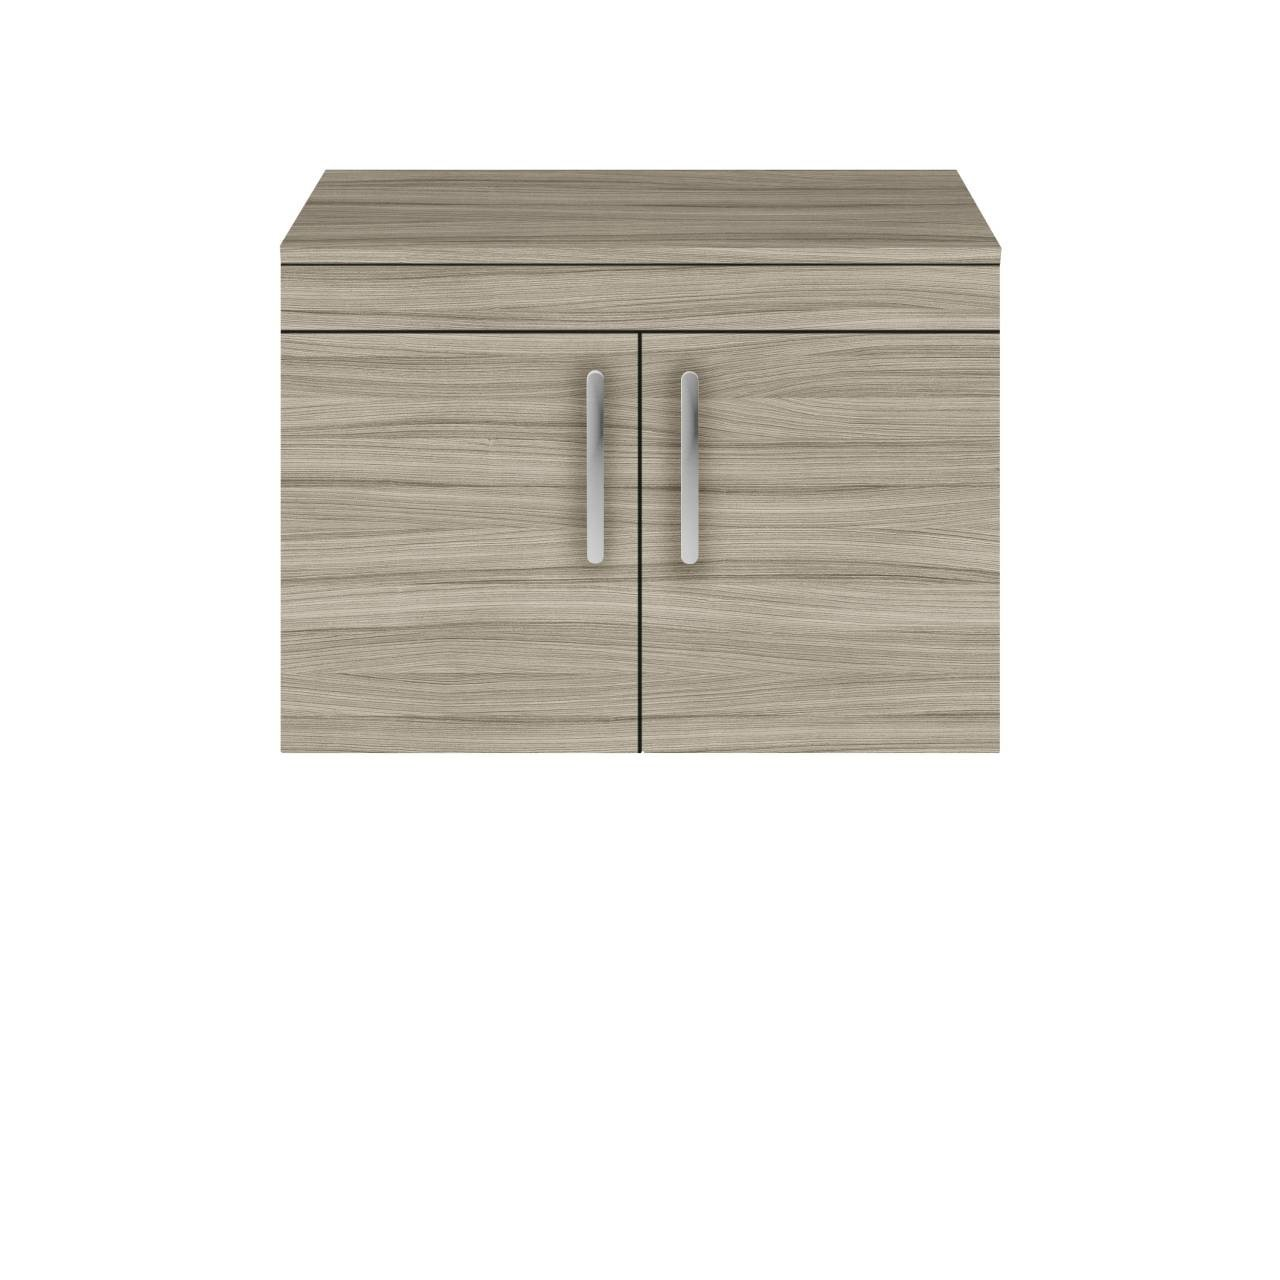 Premier Athena Driftwood 800mm Wall Hung 2 Door Vanity Unit with Worktop - ATH096W